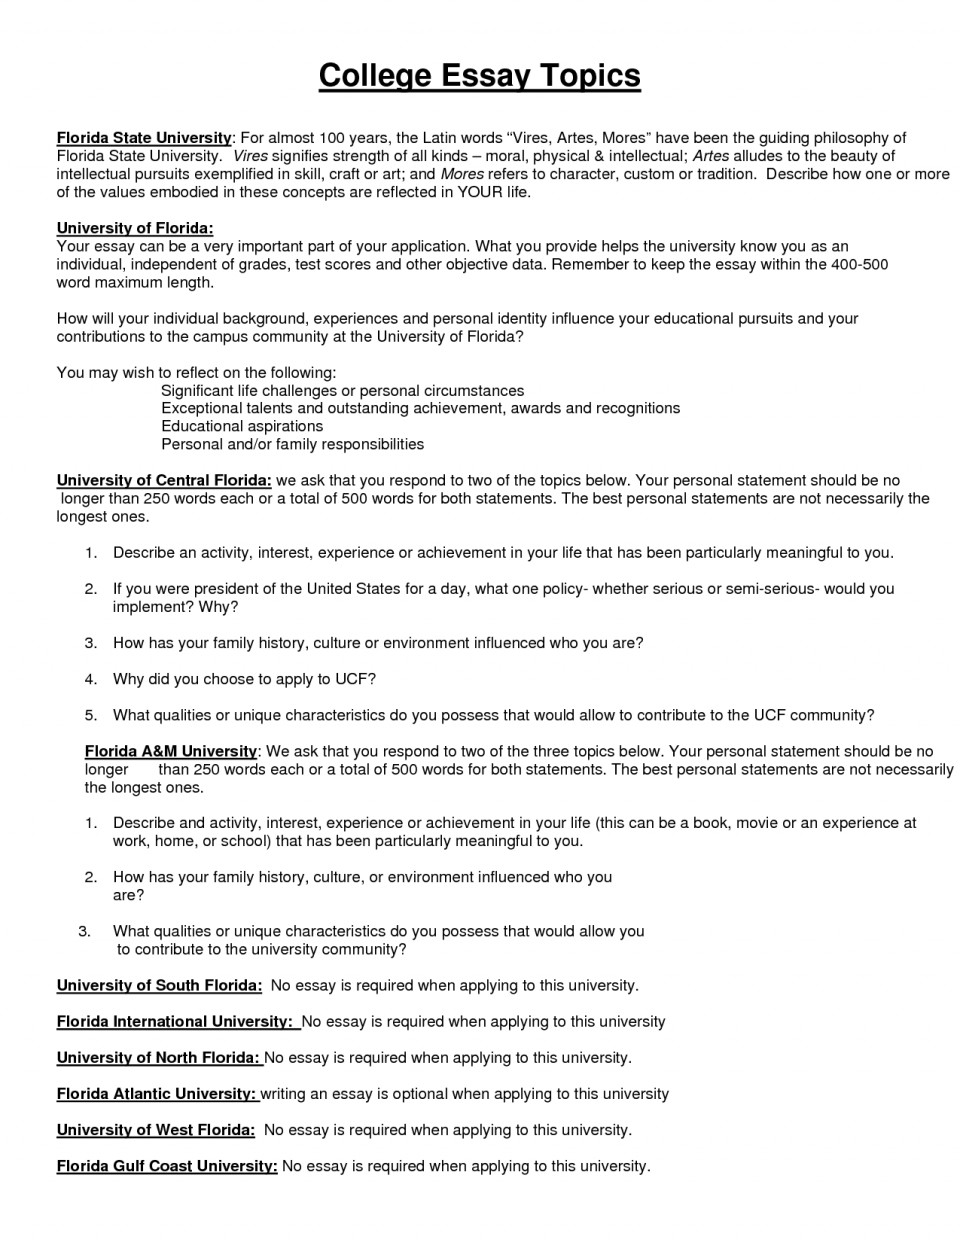 006 Free Topic Essay Resume Examples Templates How To Write Good For College Example Best Surprising Topics Research Paper Student High School Argumentative 960